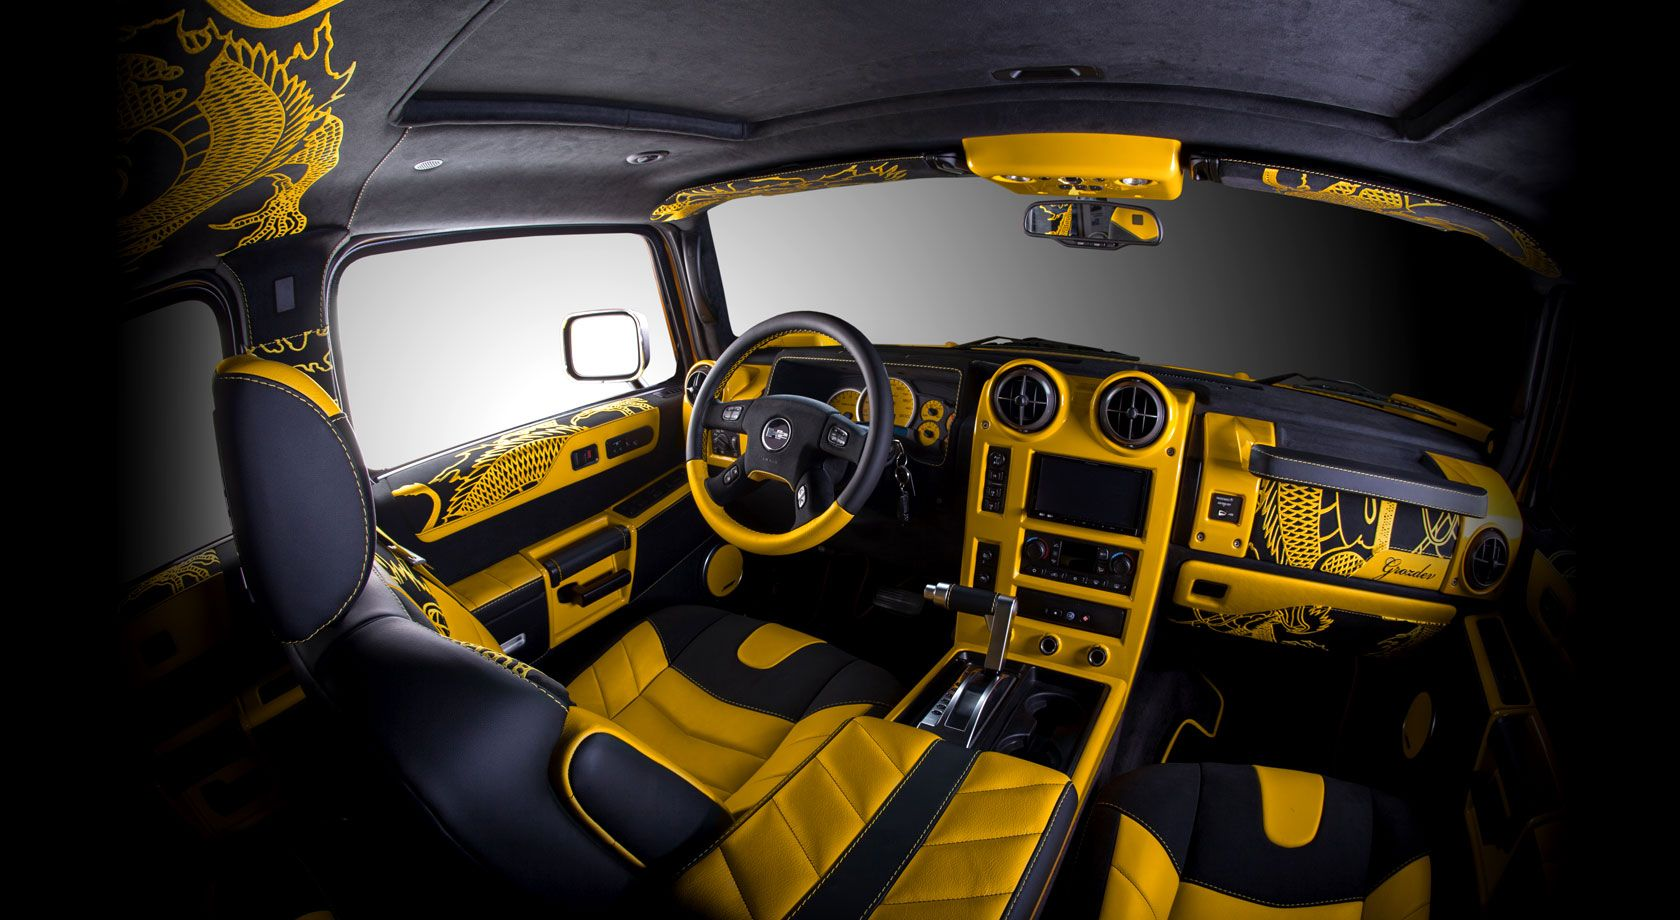 Hummer h2 interior at autostyle h2 pinterest hummer h2 hummer h2 interior at autostyle h2 pinterest hummer h2 cars and car stuff vanachro Images